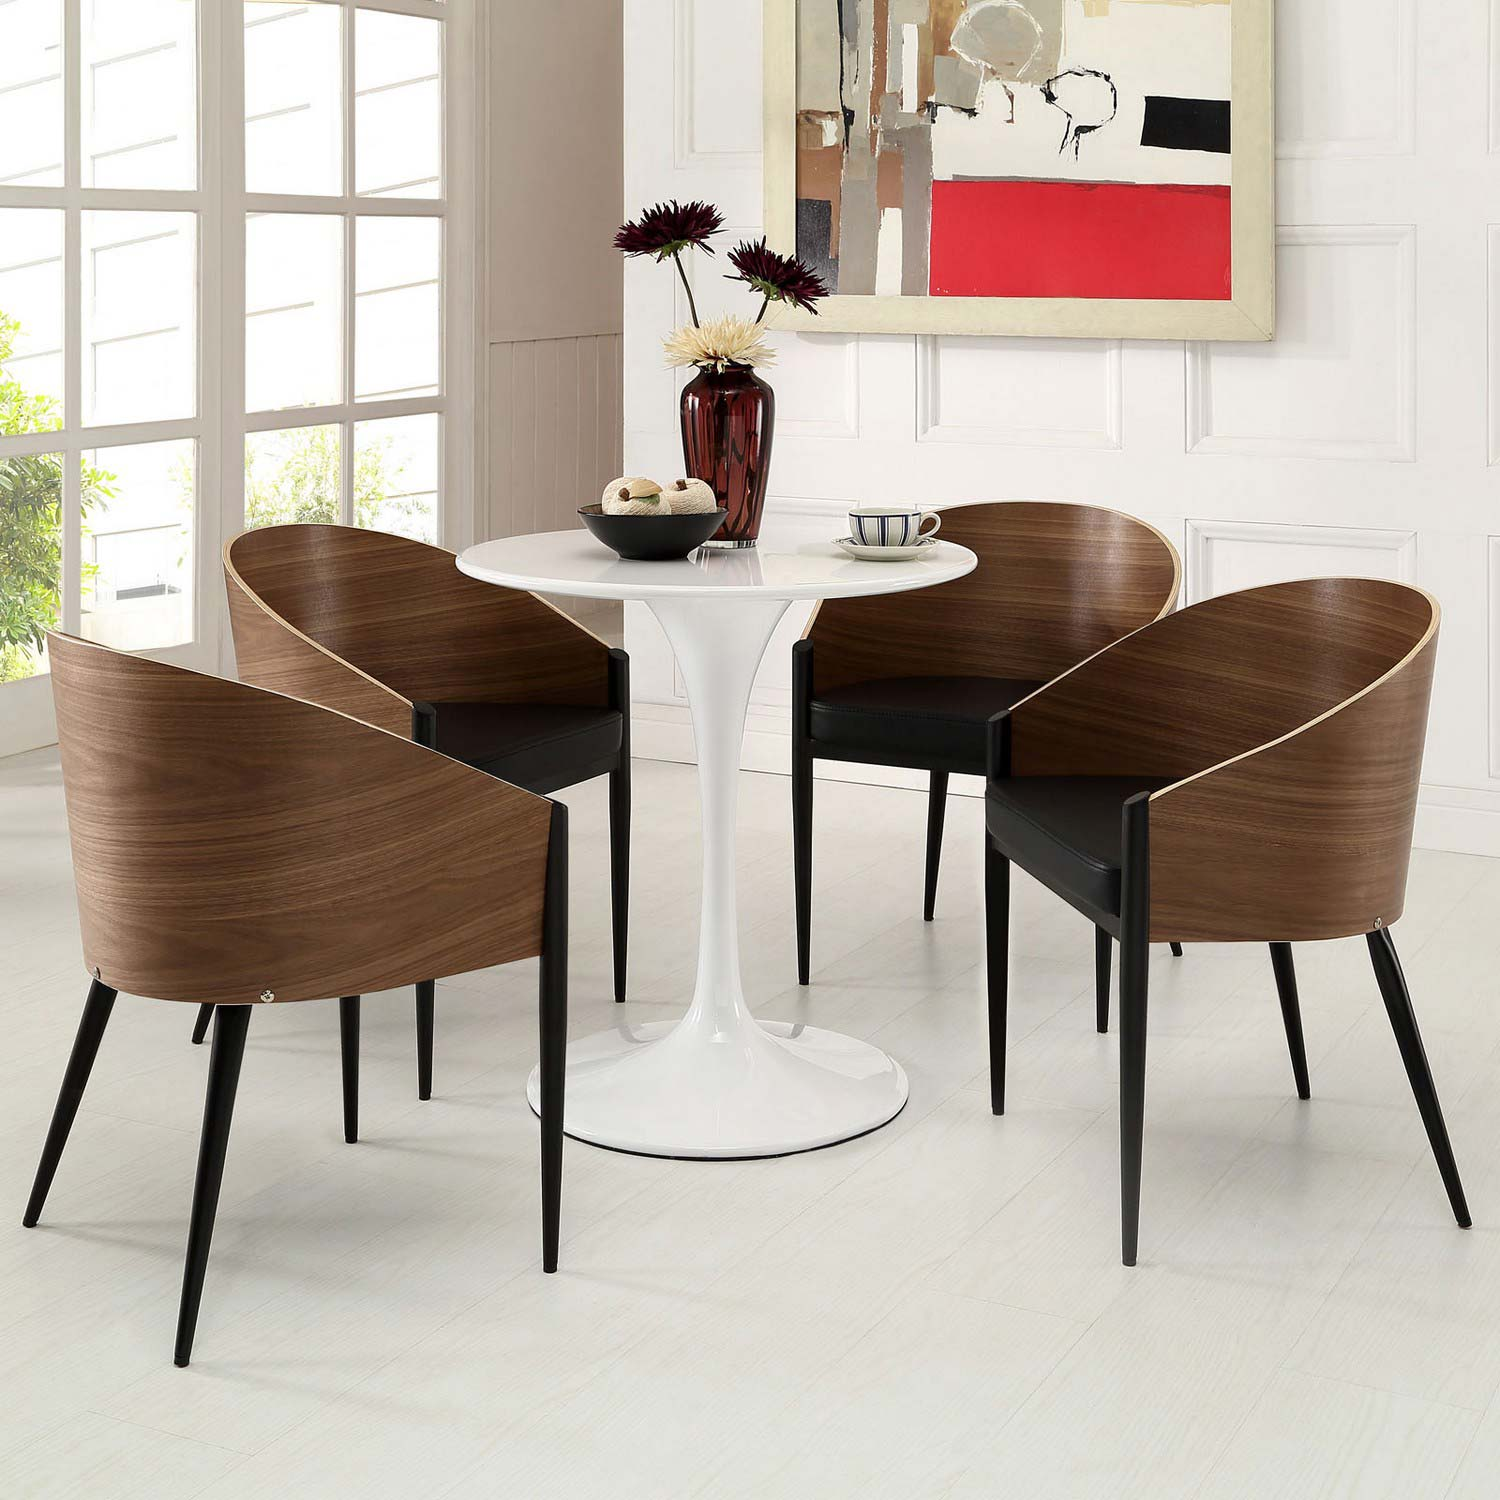 Modway Cooper Dining Chairs Set of 4 - Walnut